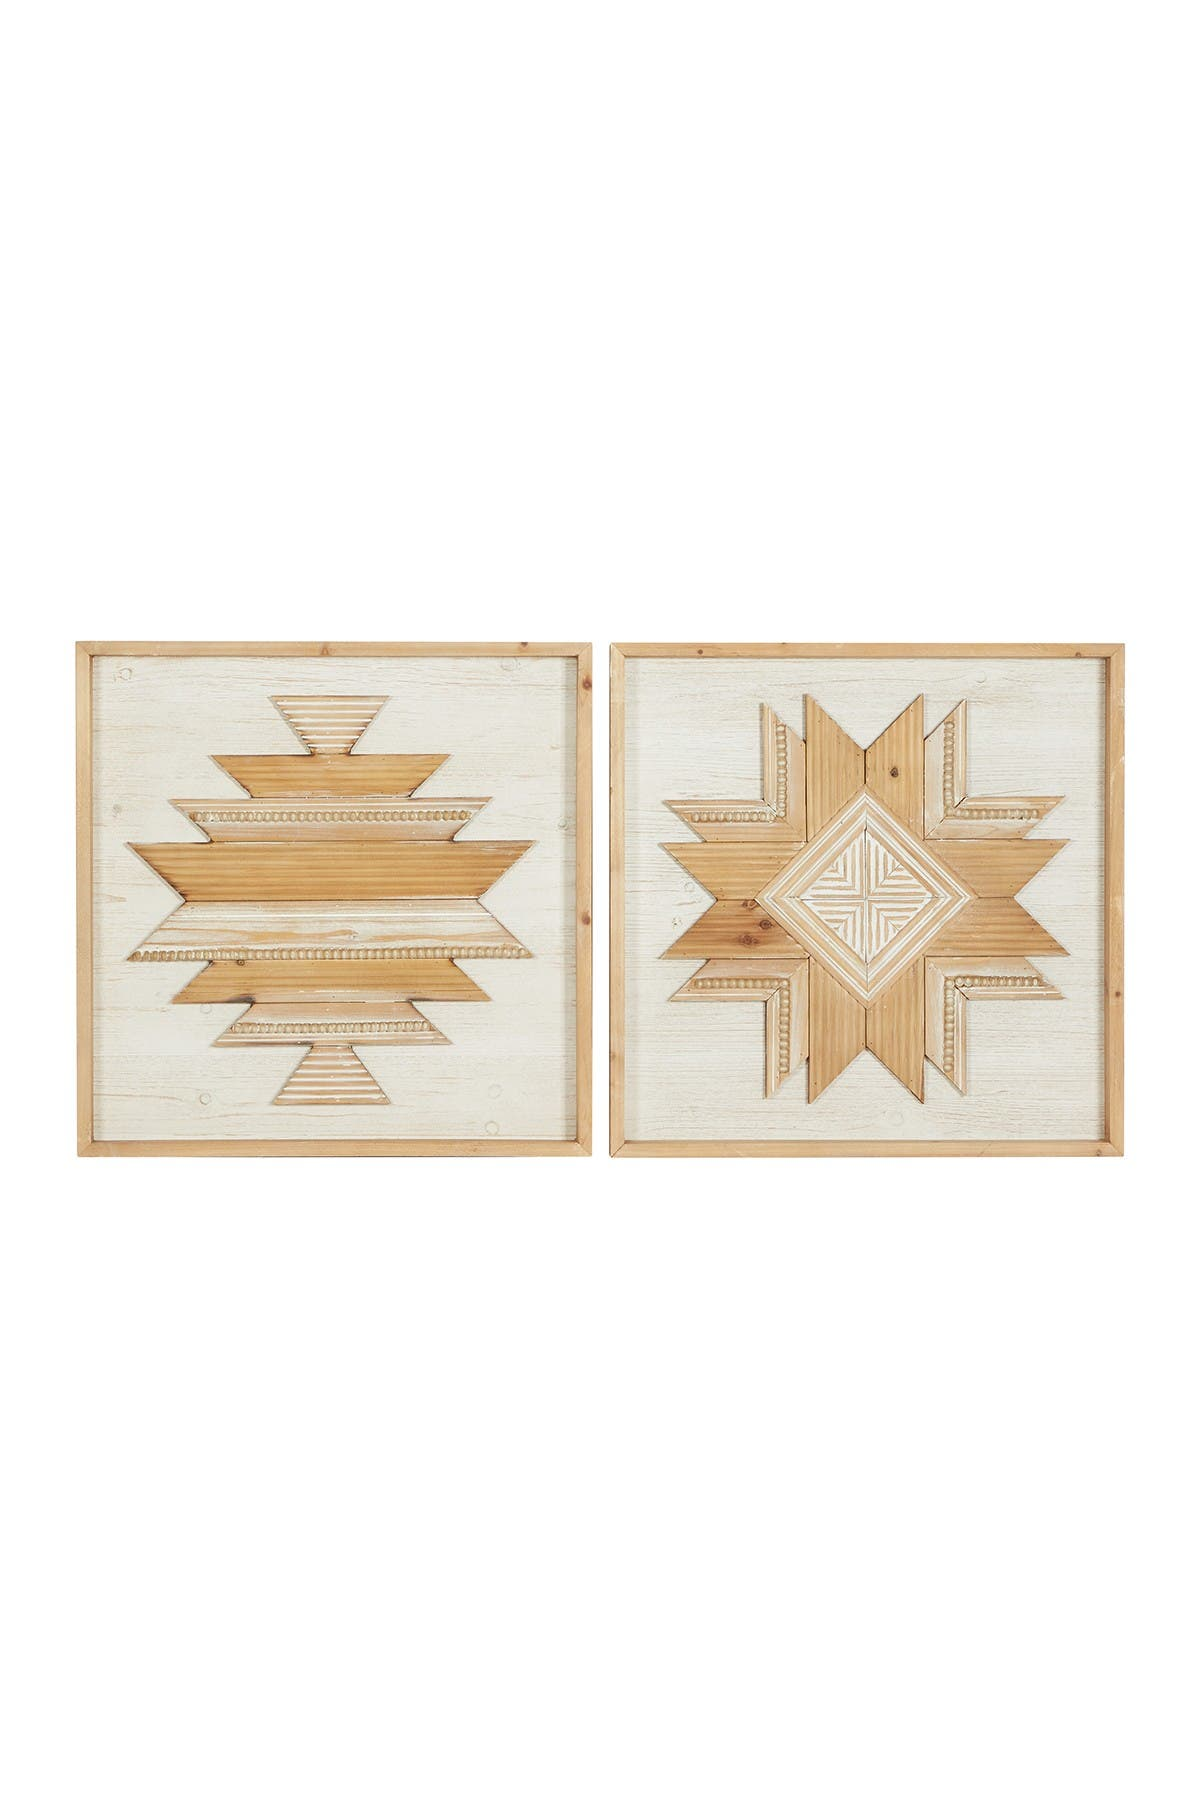 """Image of Willow Row Carved Square 2 Panel Wood Wall Decor - 24"""" X 24"""" - Set of 2"""